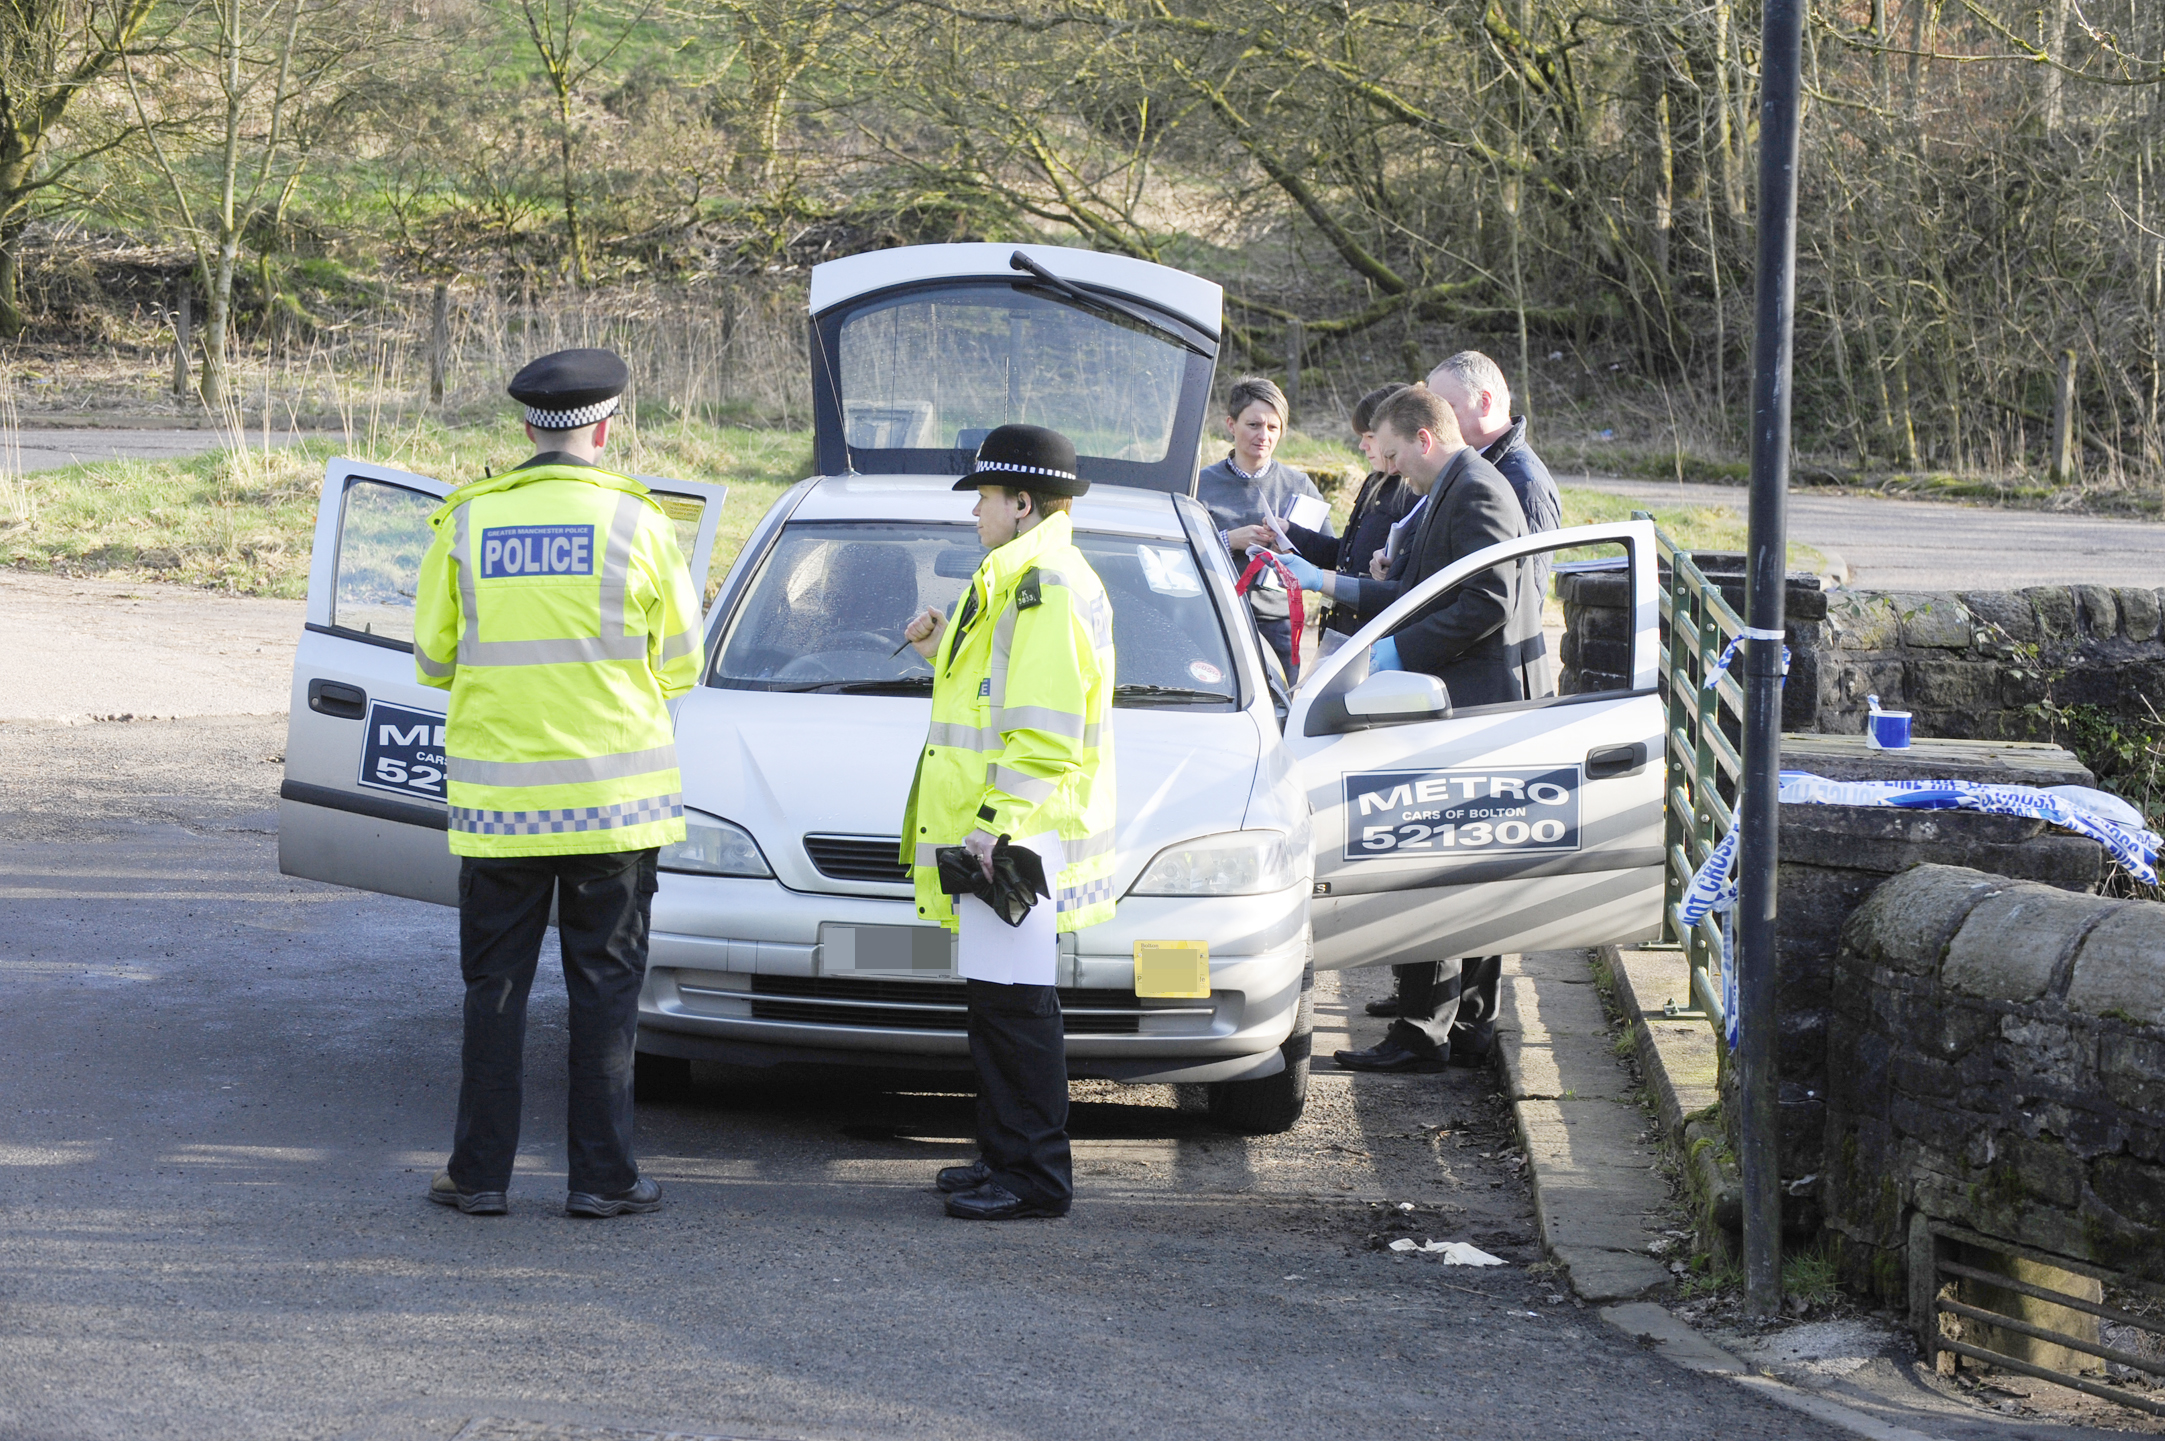 Metro taxi driver found hanged from Barrow Bridge